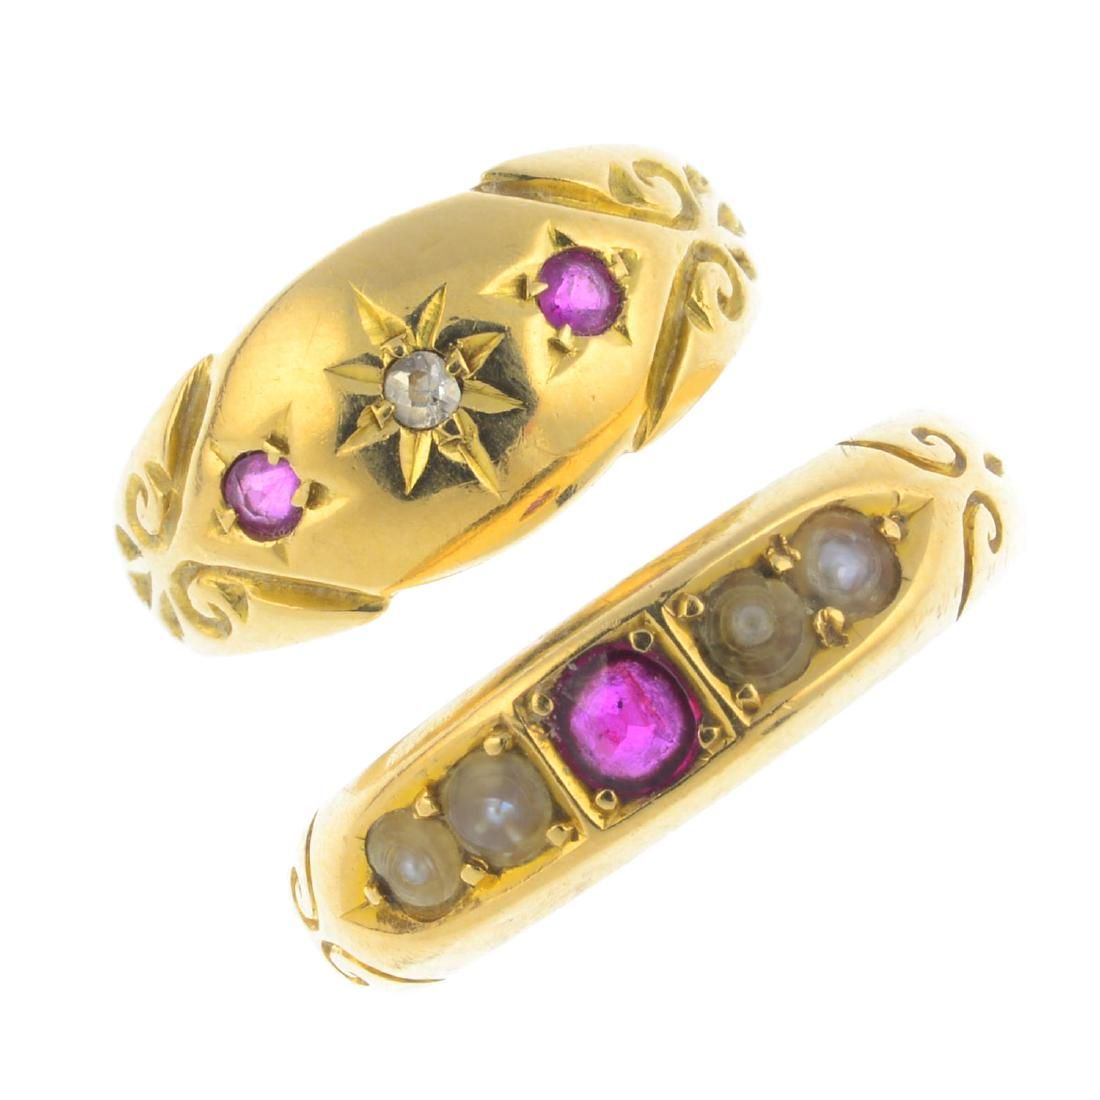 Two 18ct gold diamond and gem-set rings. To include an